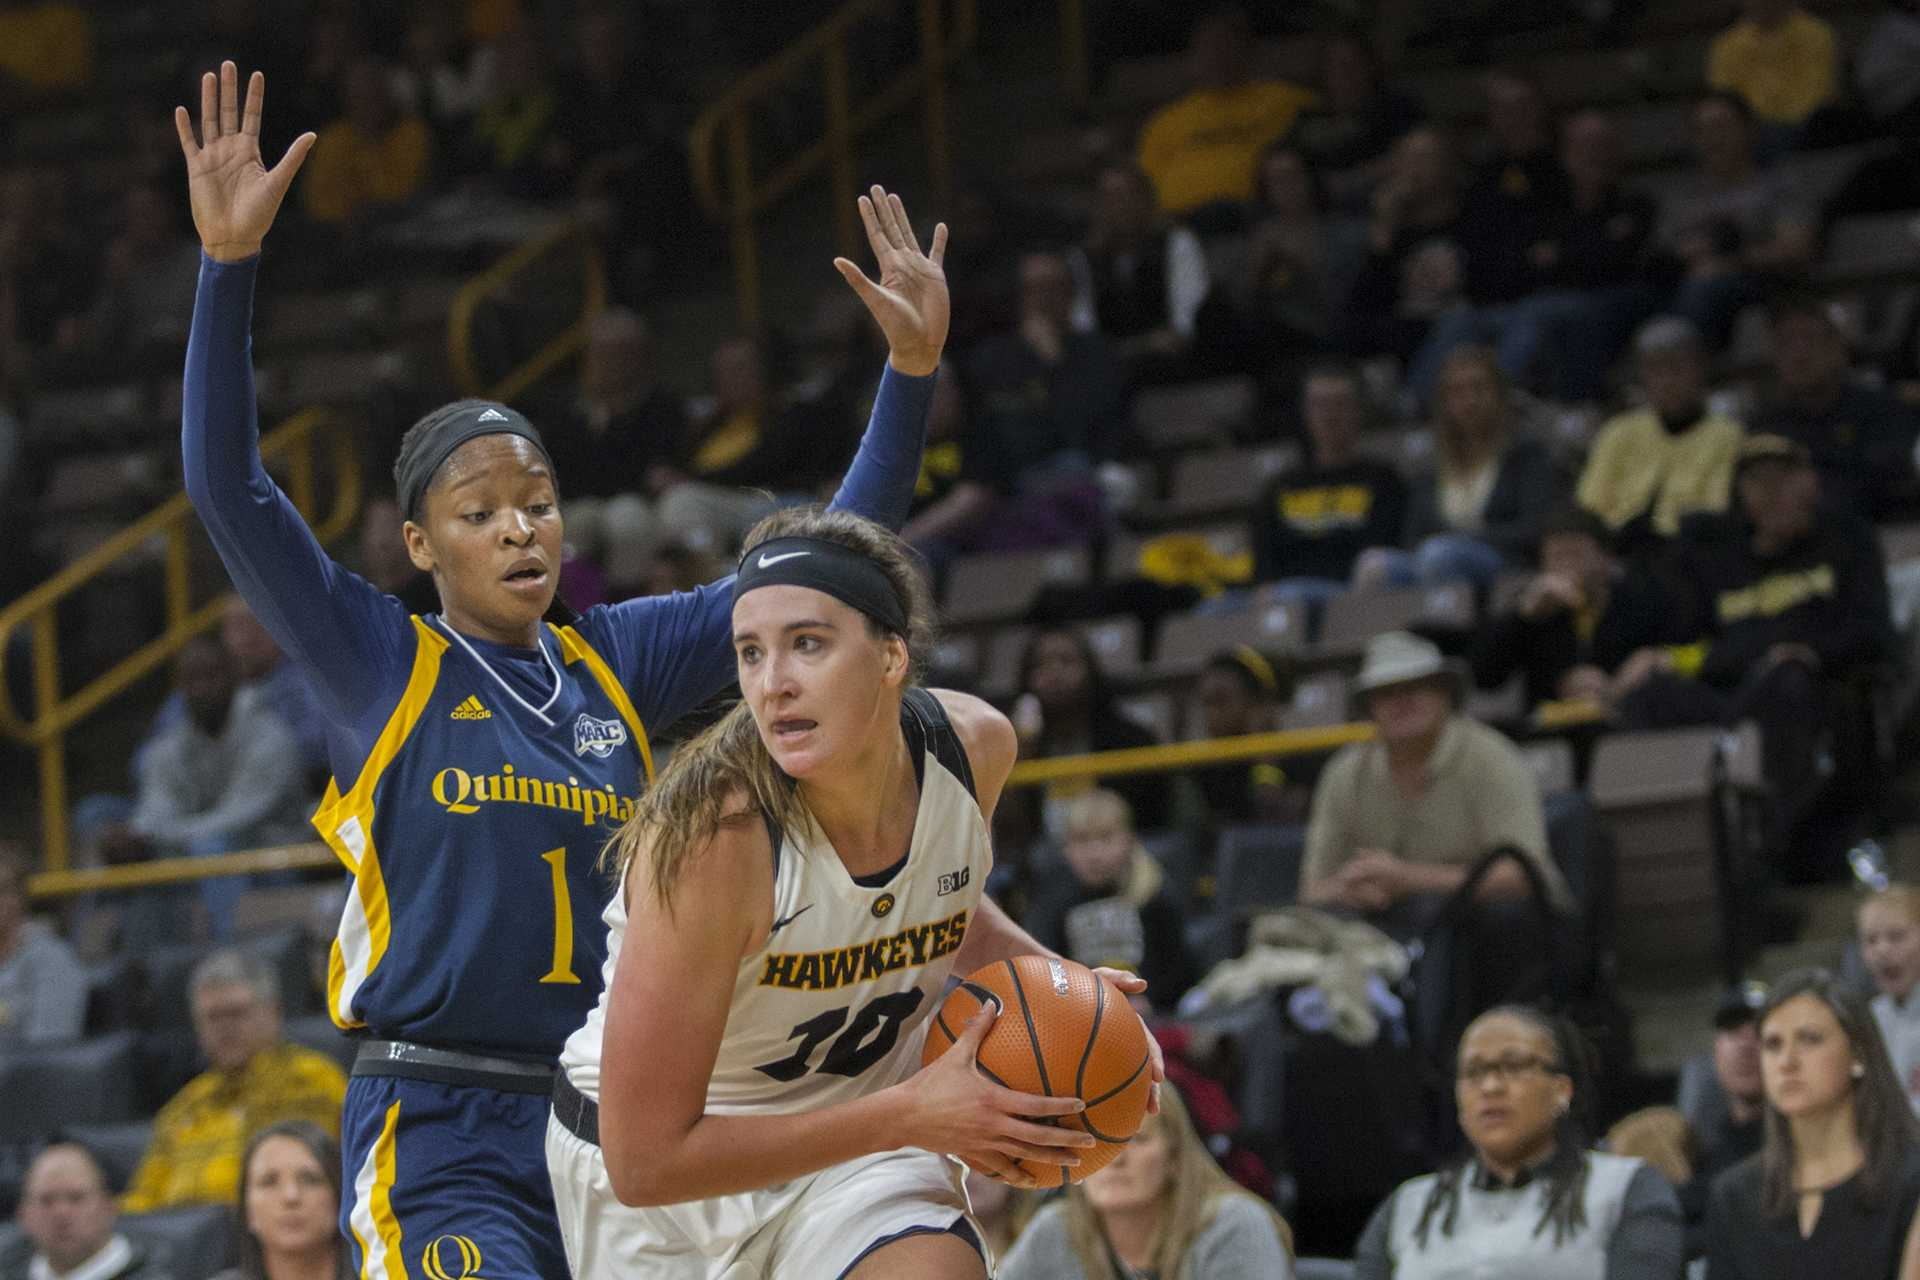 Iowa center Megan Gustafson during the Iowa/Quinnipiac basketball game at Carver-Hawkeye Arena on Friday, Nov. 10, 2017. The Hawkeyes defeated the Bobcats, 83-67, for head coach Lisa Bluder's 700 career win. (Lily Smith/The Daily Iowan)